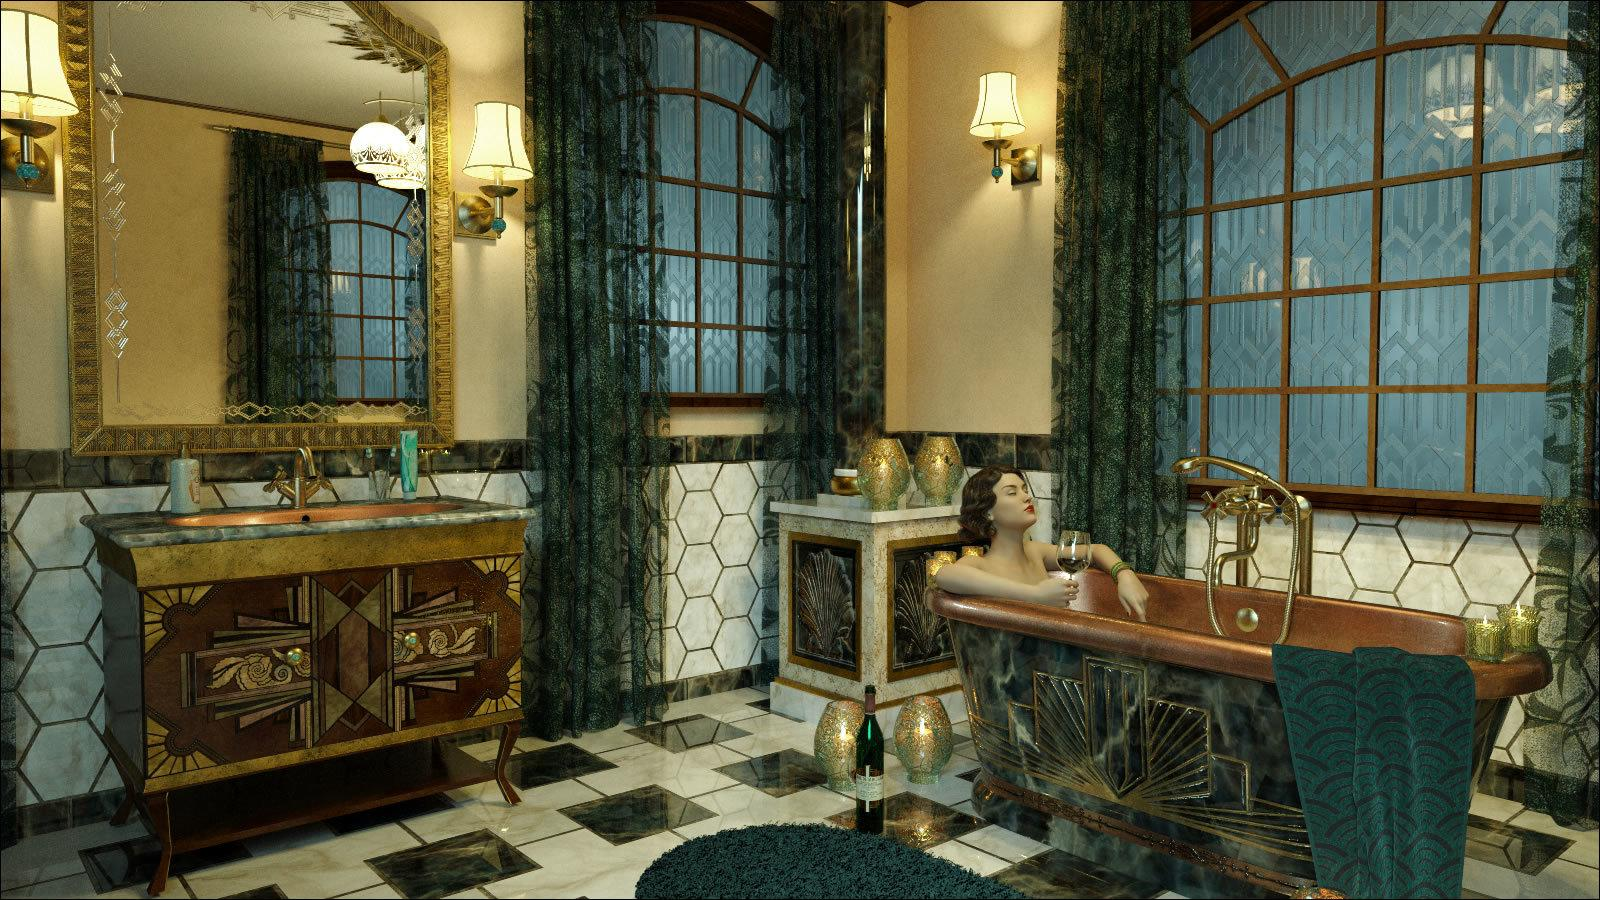 The Art Deco Bath